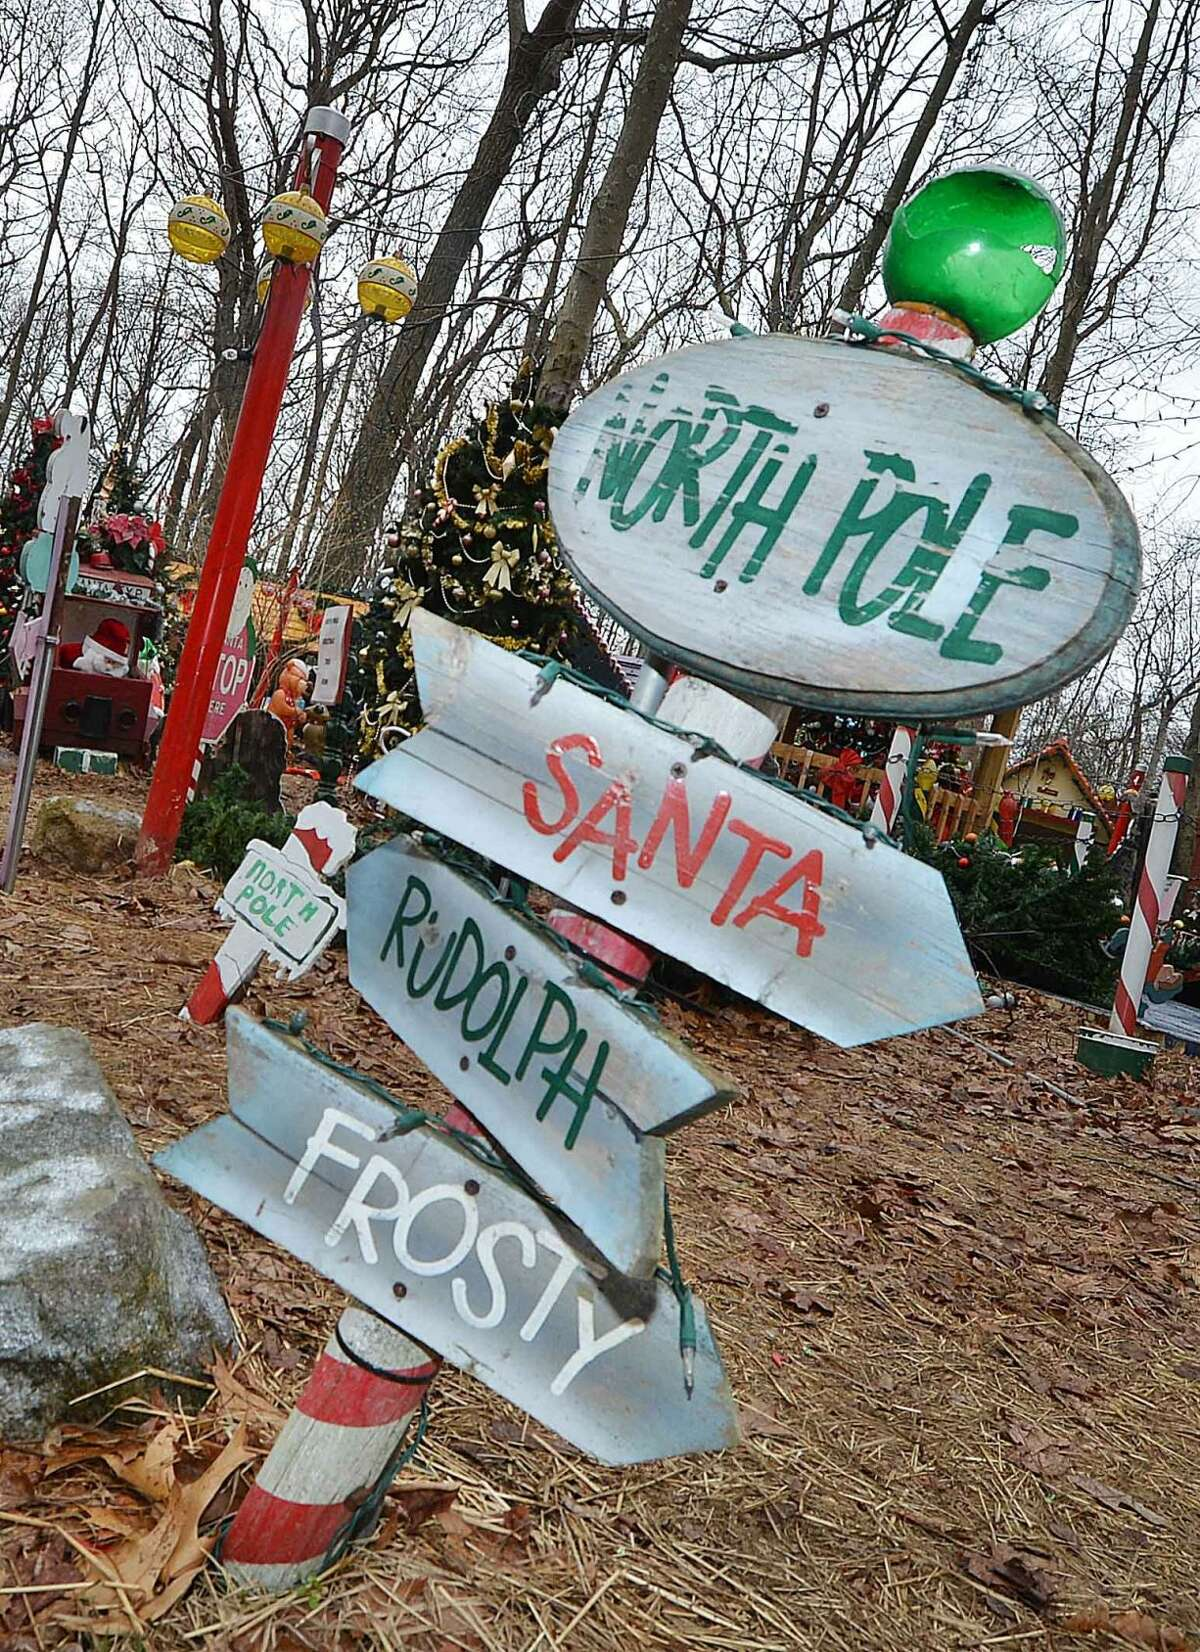 Hour Photo/Alex von Kleydorff Rick and Joan Setti will hold a tag sale to sell the items they have built and displayed over the last 26 Holiday's at their Norwalk home. This signpost has directed people for years throught the extensive display